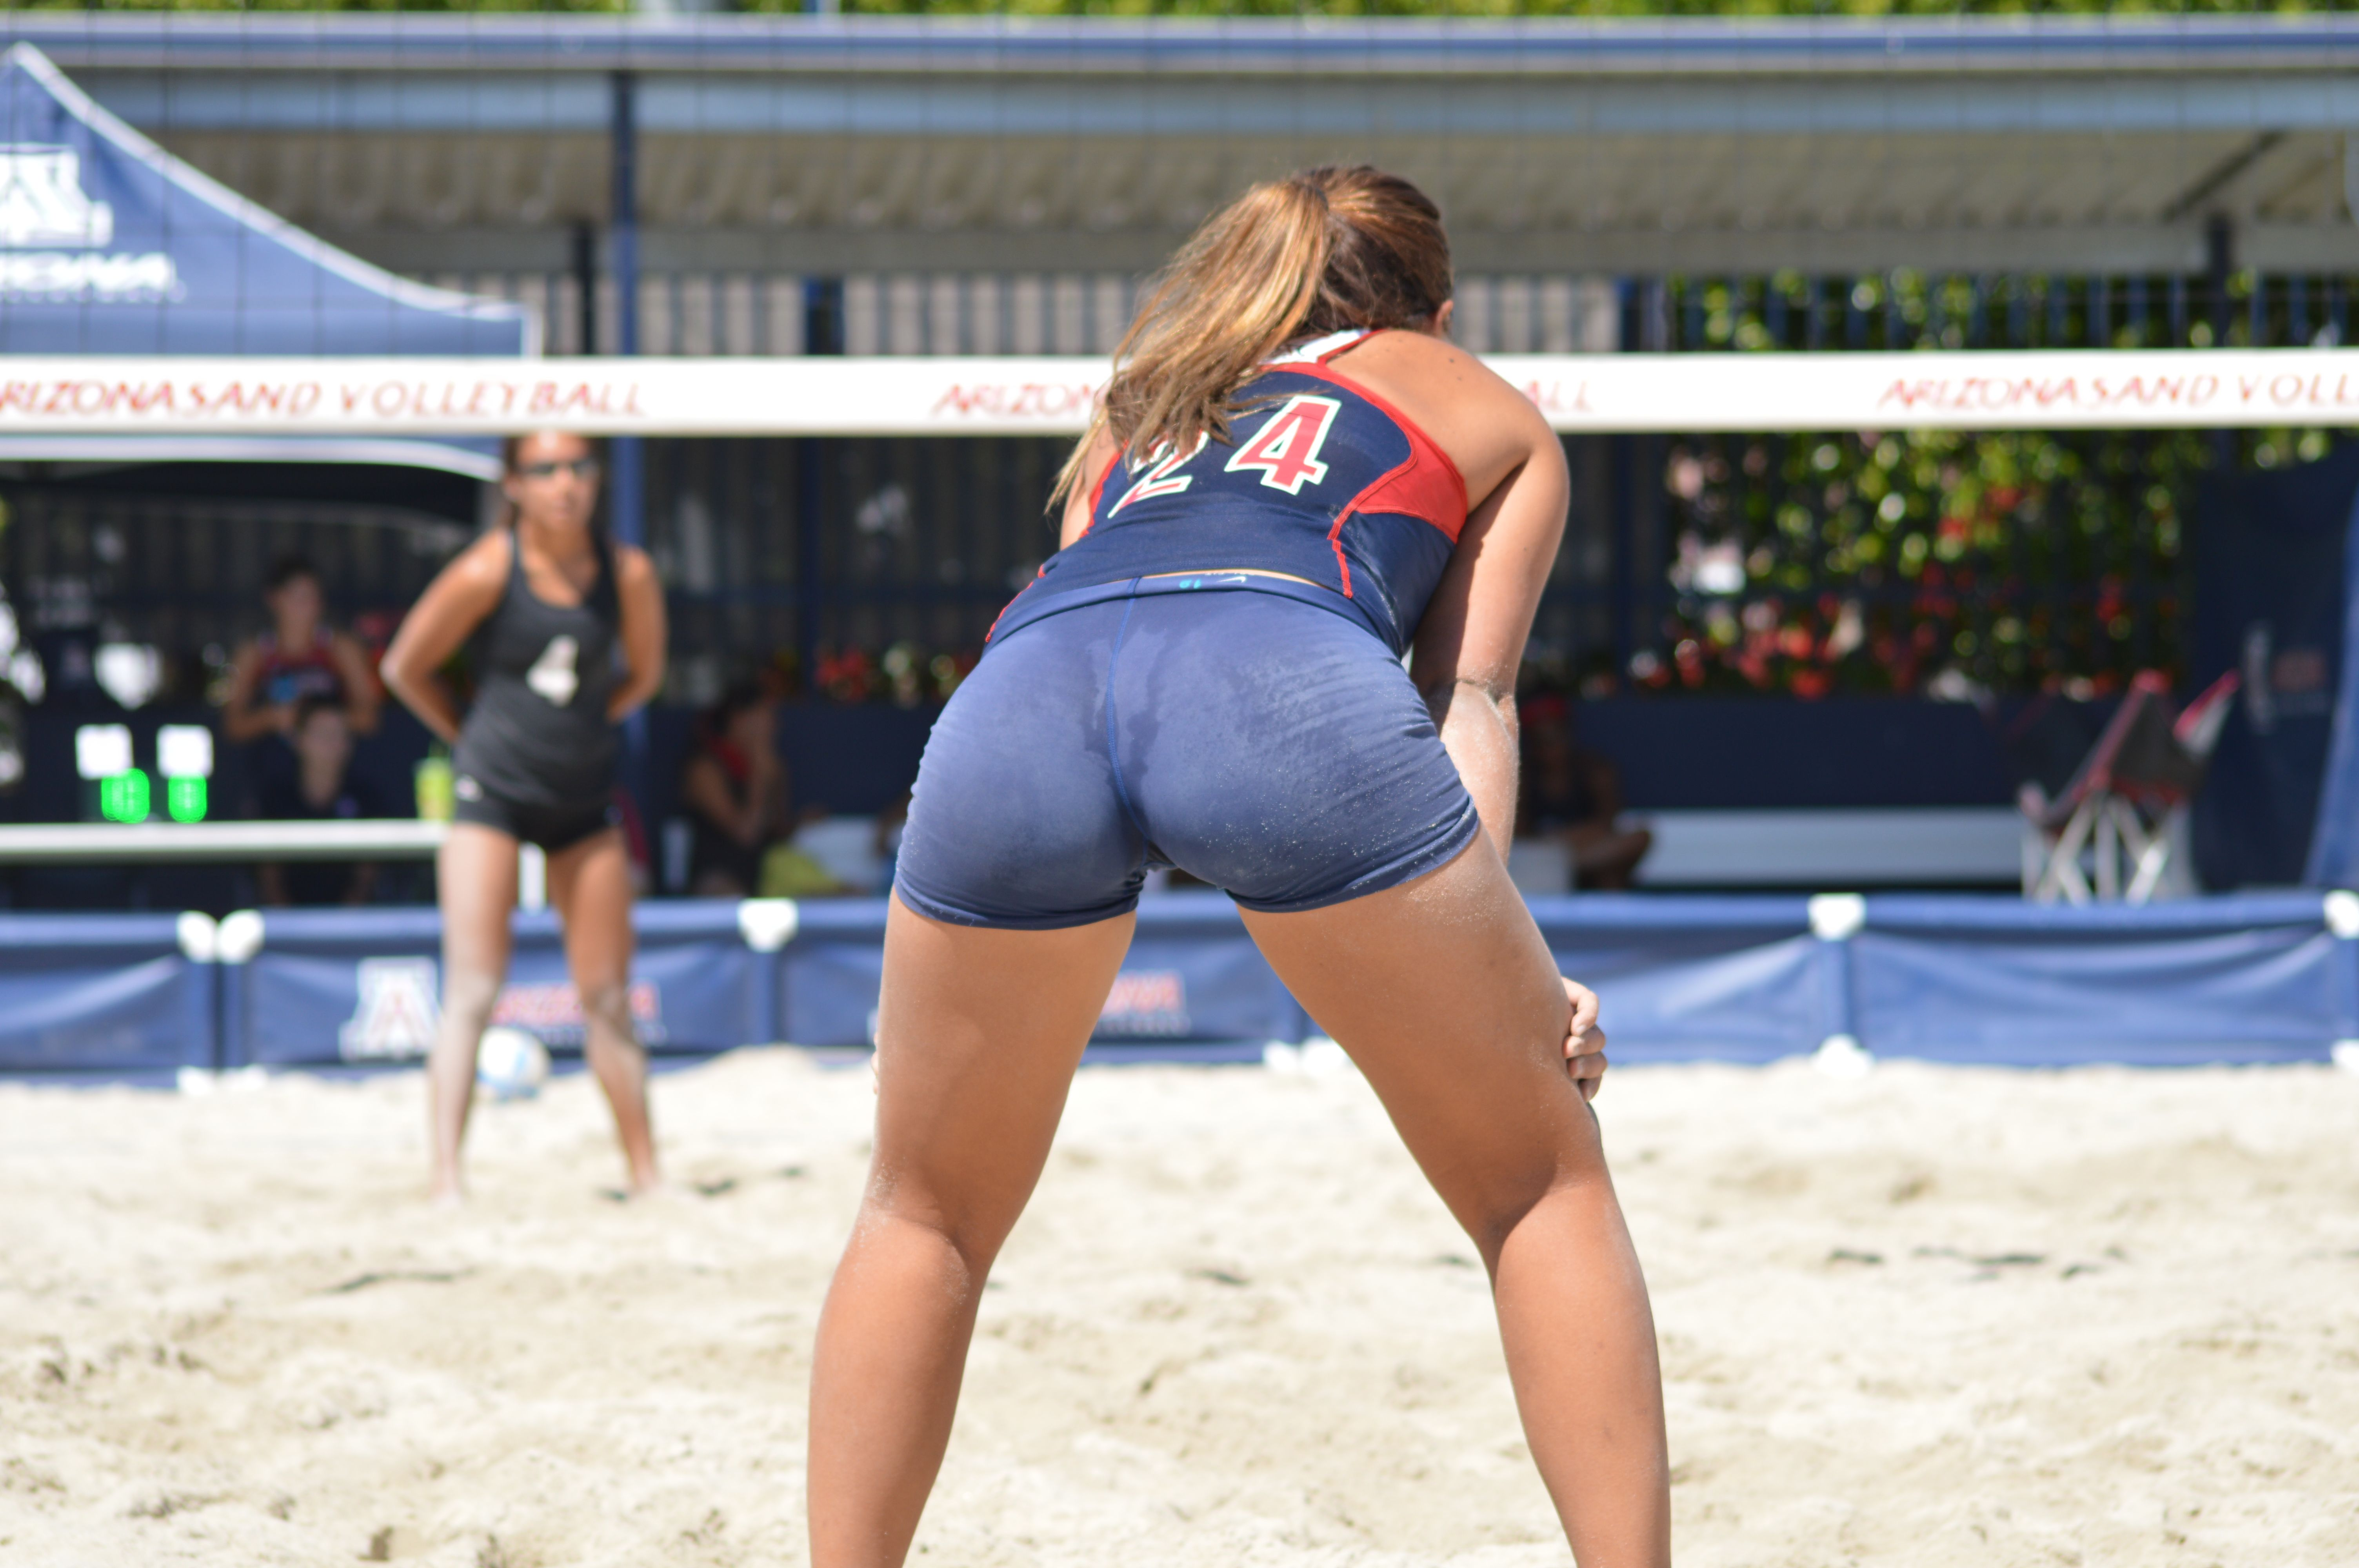 Ass ball booty butt spandex volley volleyball photo 859